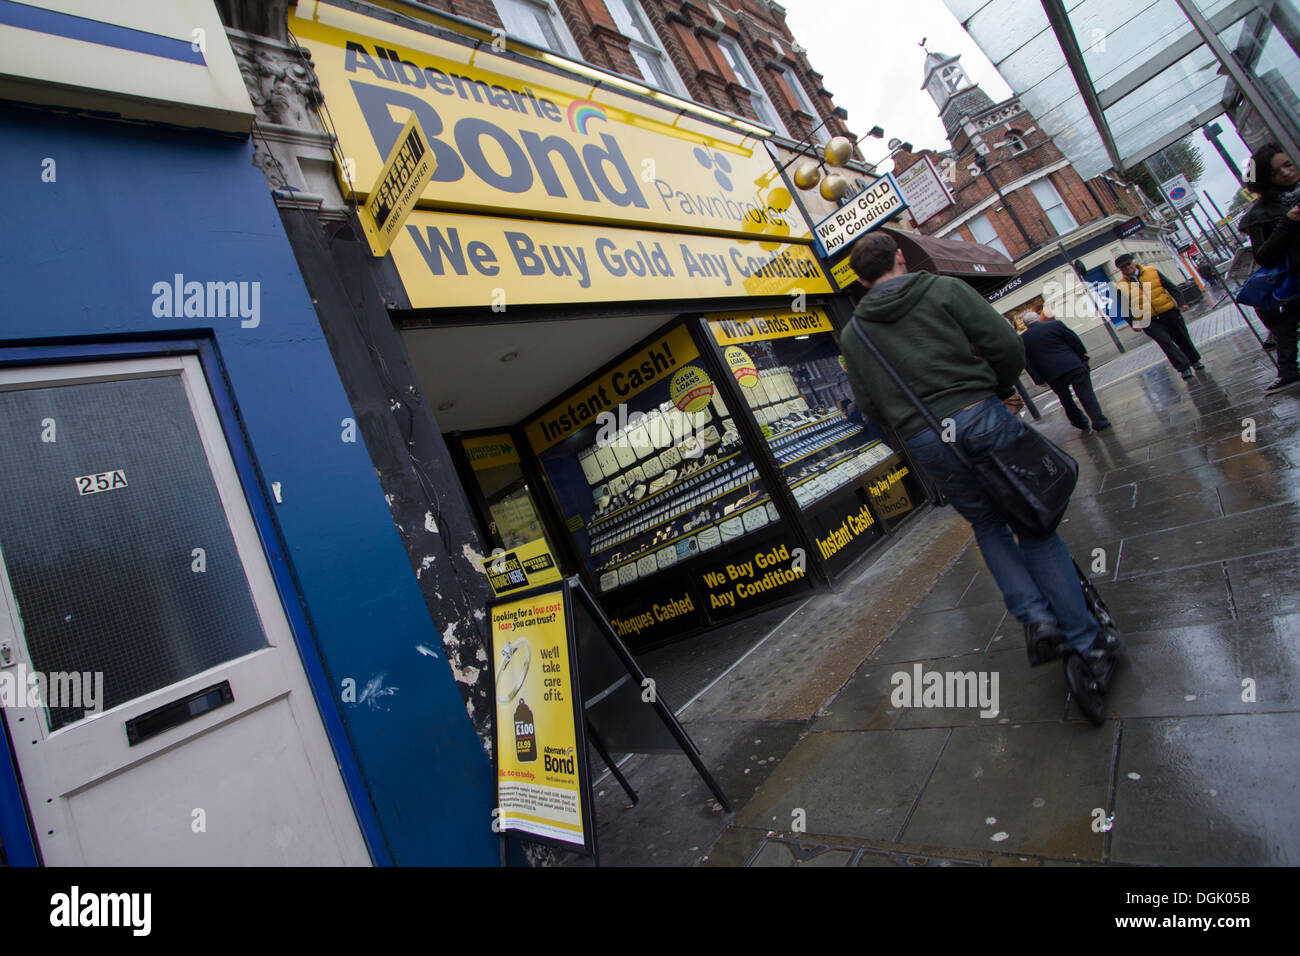 Albemarle Bond Shepherds Bush London, Albemarle Bond are Britain's biggest pawnbrokers and jewellery retailer - Stock Image